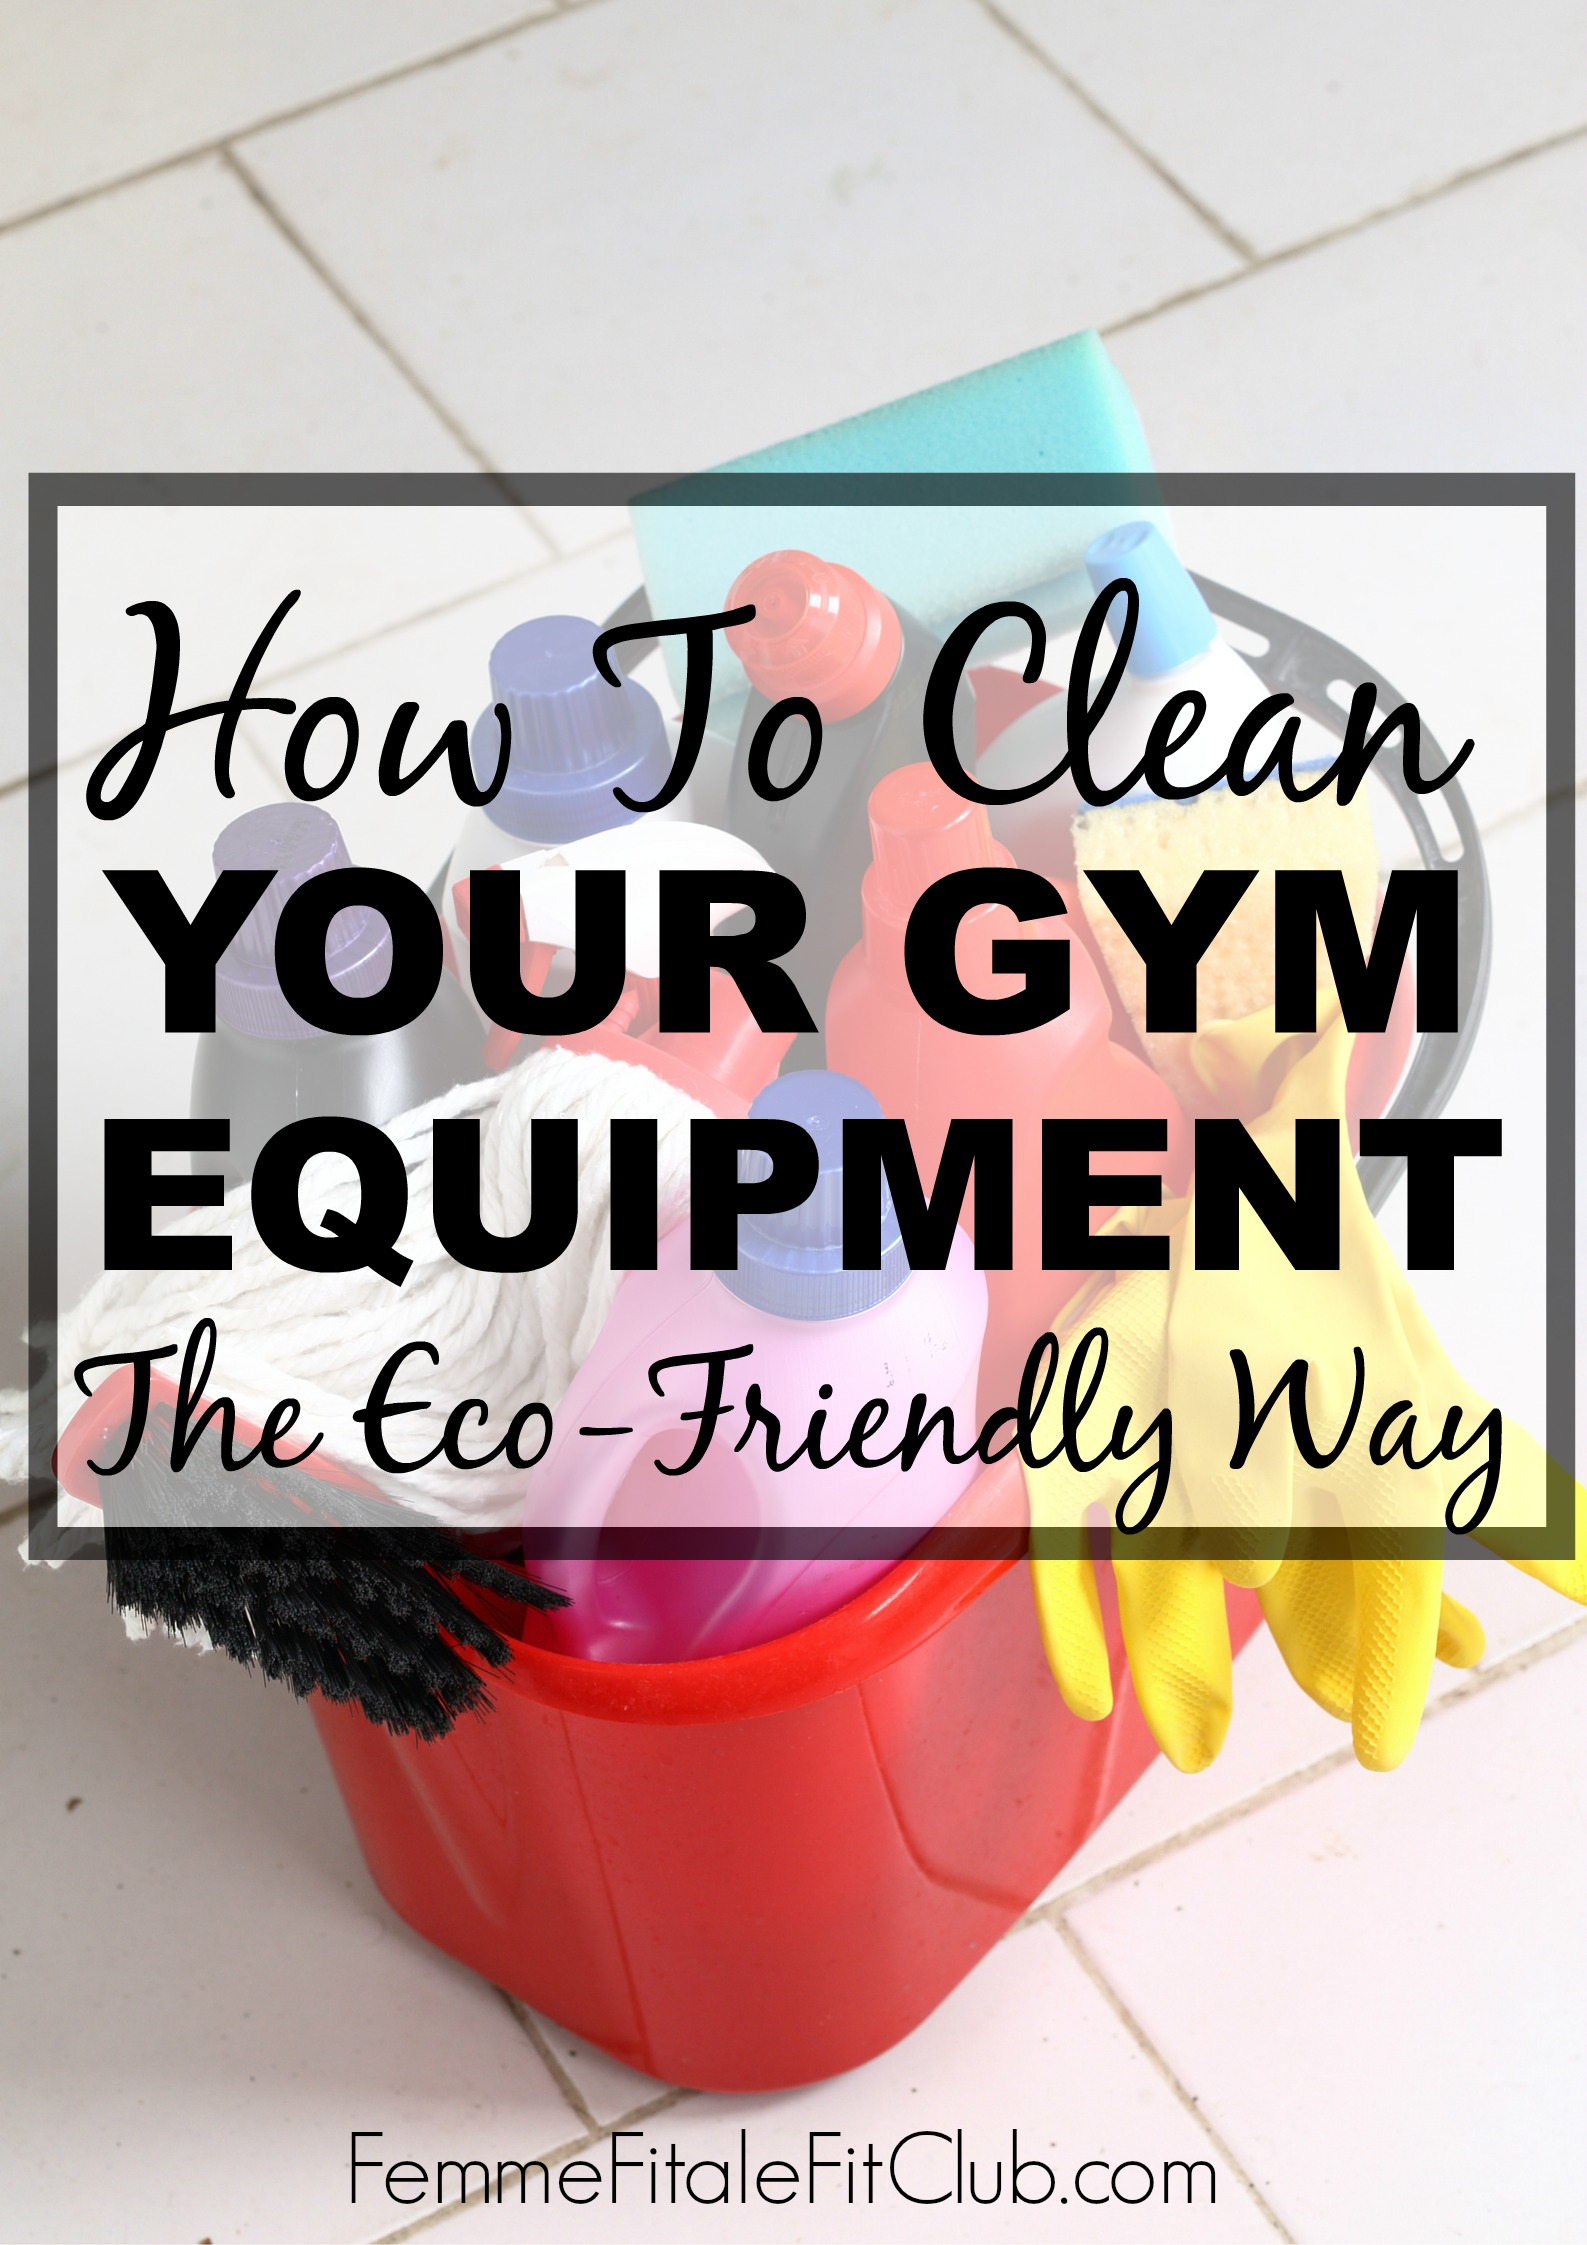 How To Clean Your Gym Equipment The Eco-Friendly Way